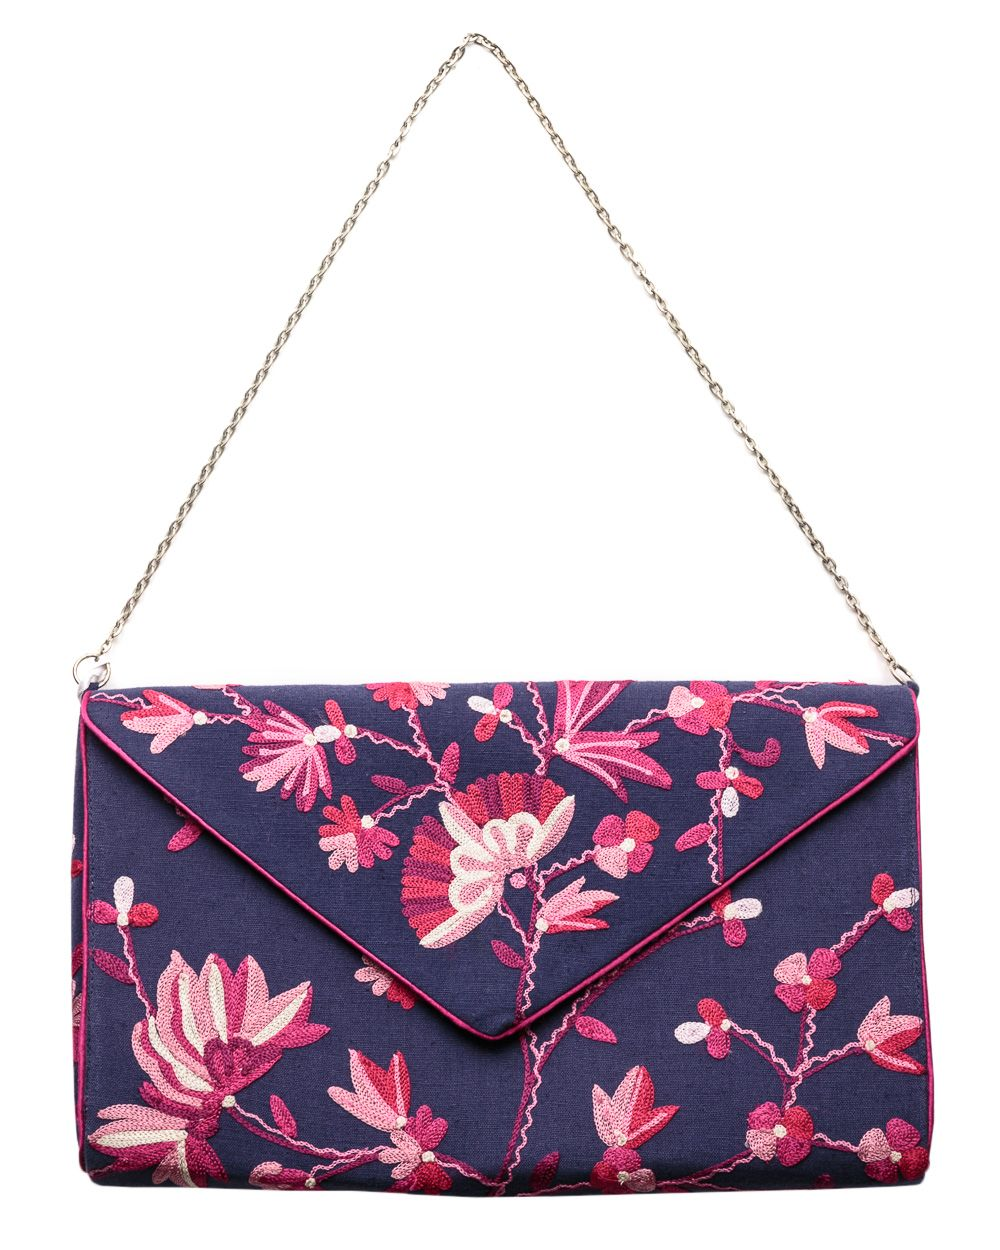 Damask rose florella bag